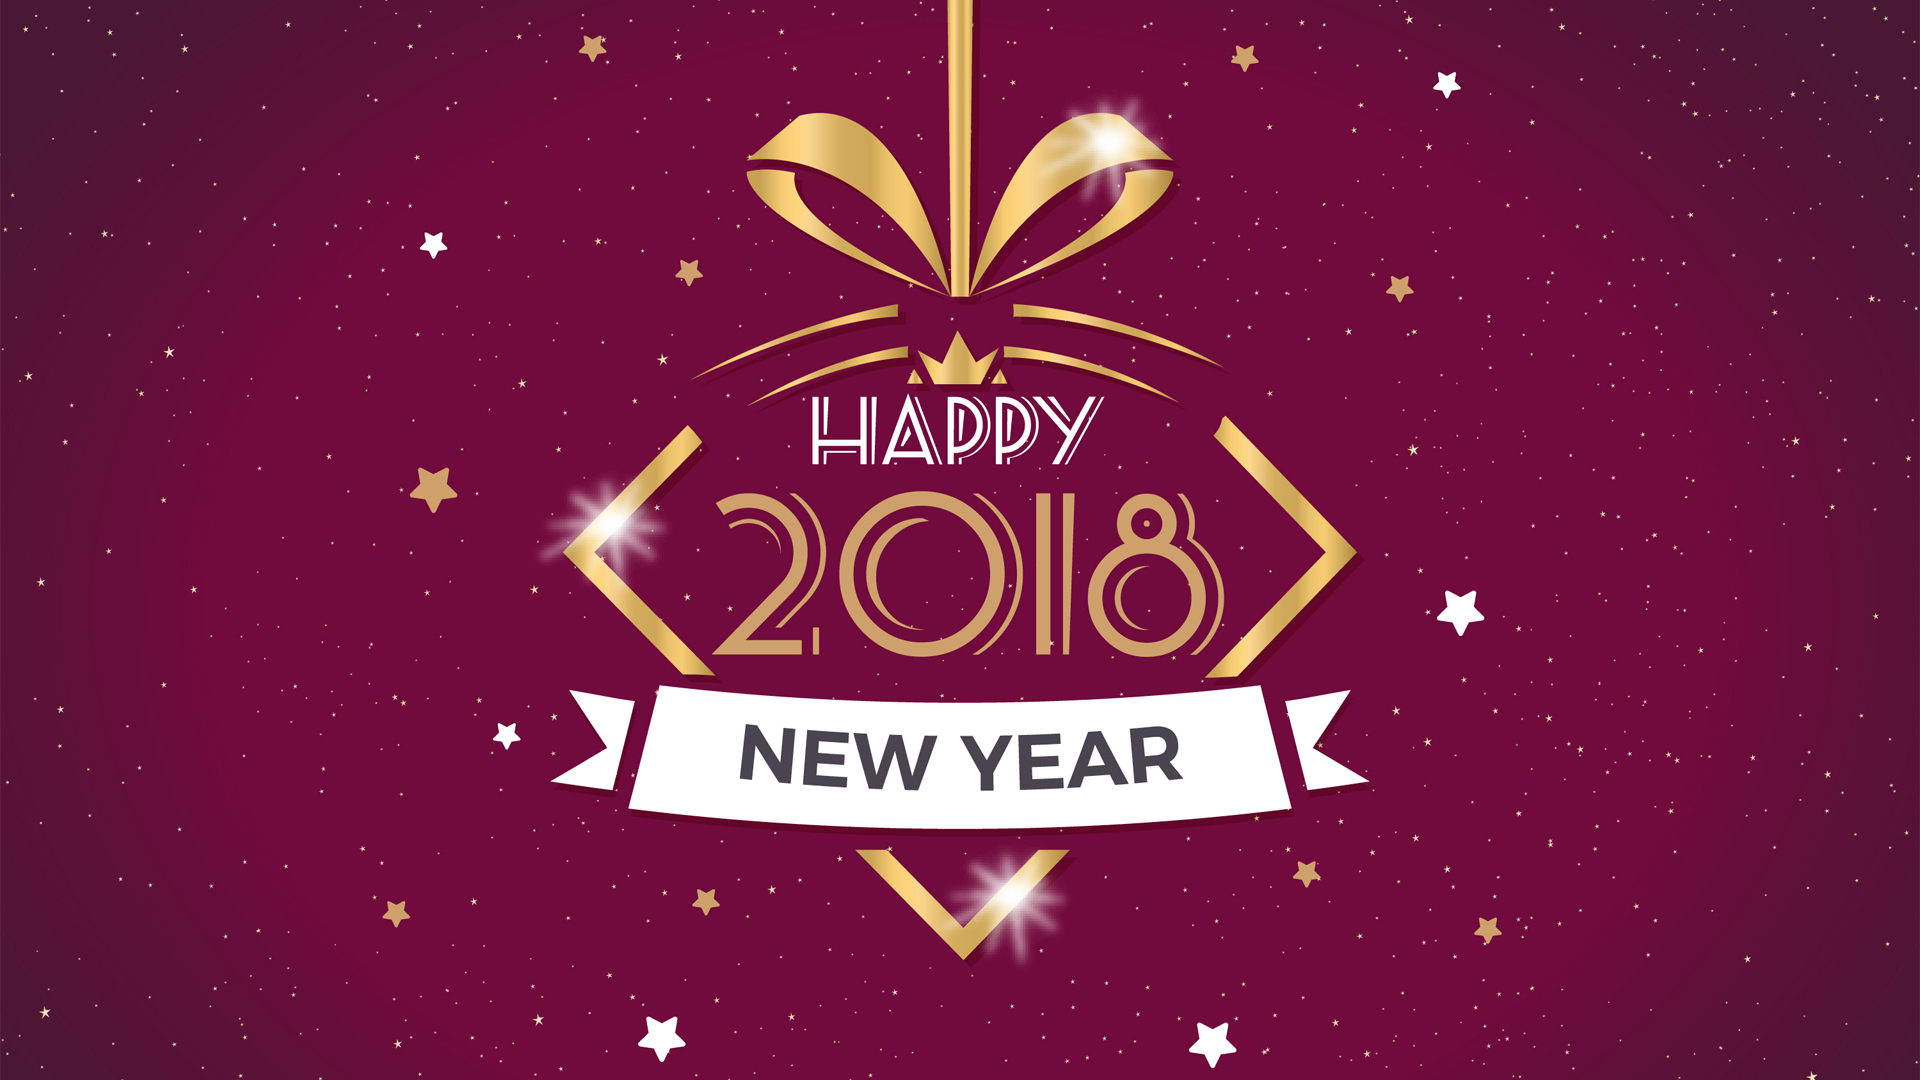 beautiful hd wallpaper of new year 2018 hd wallpapers